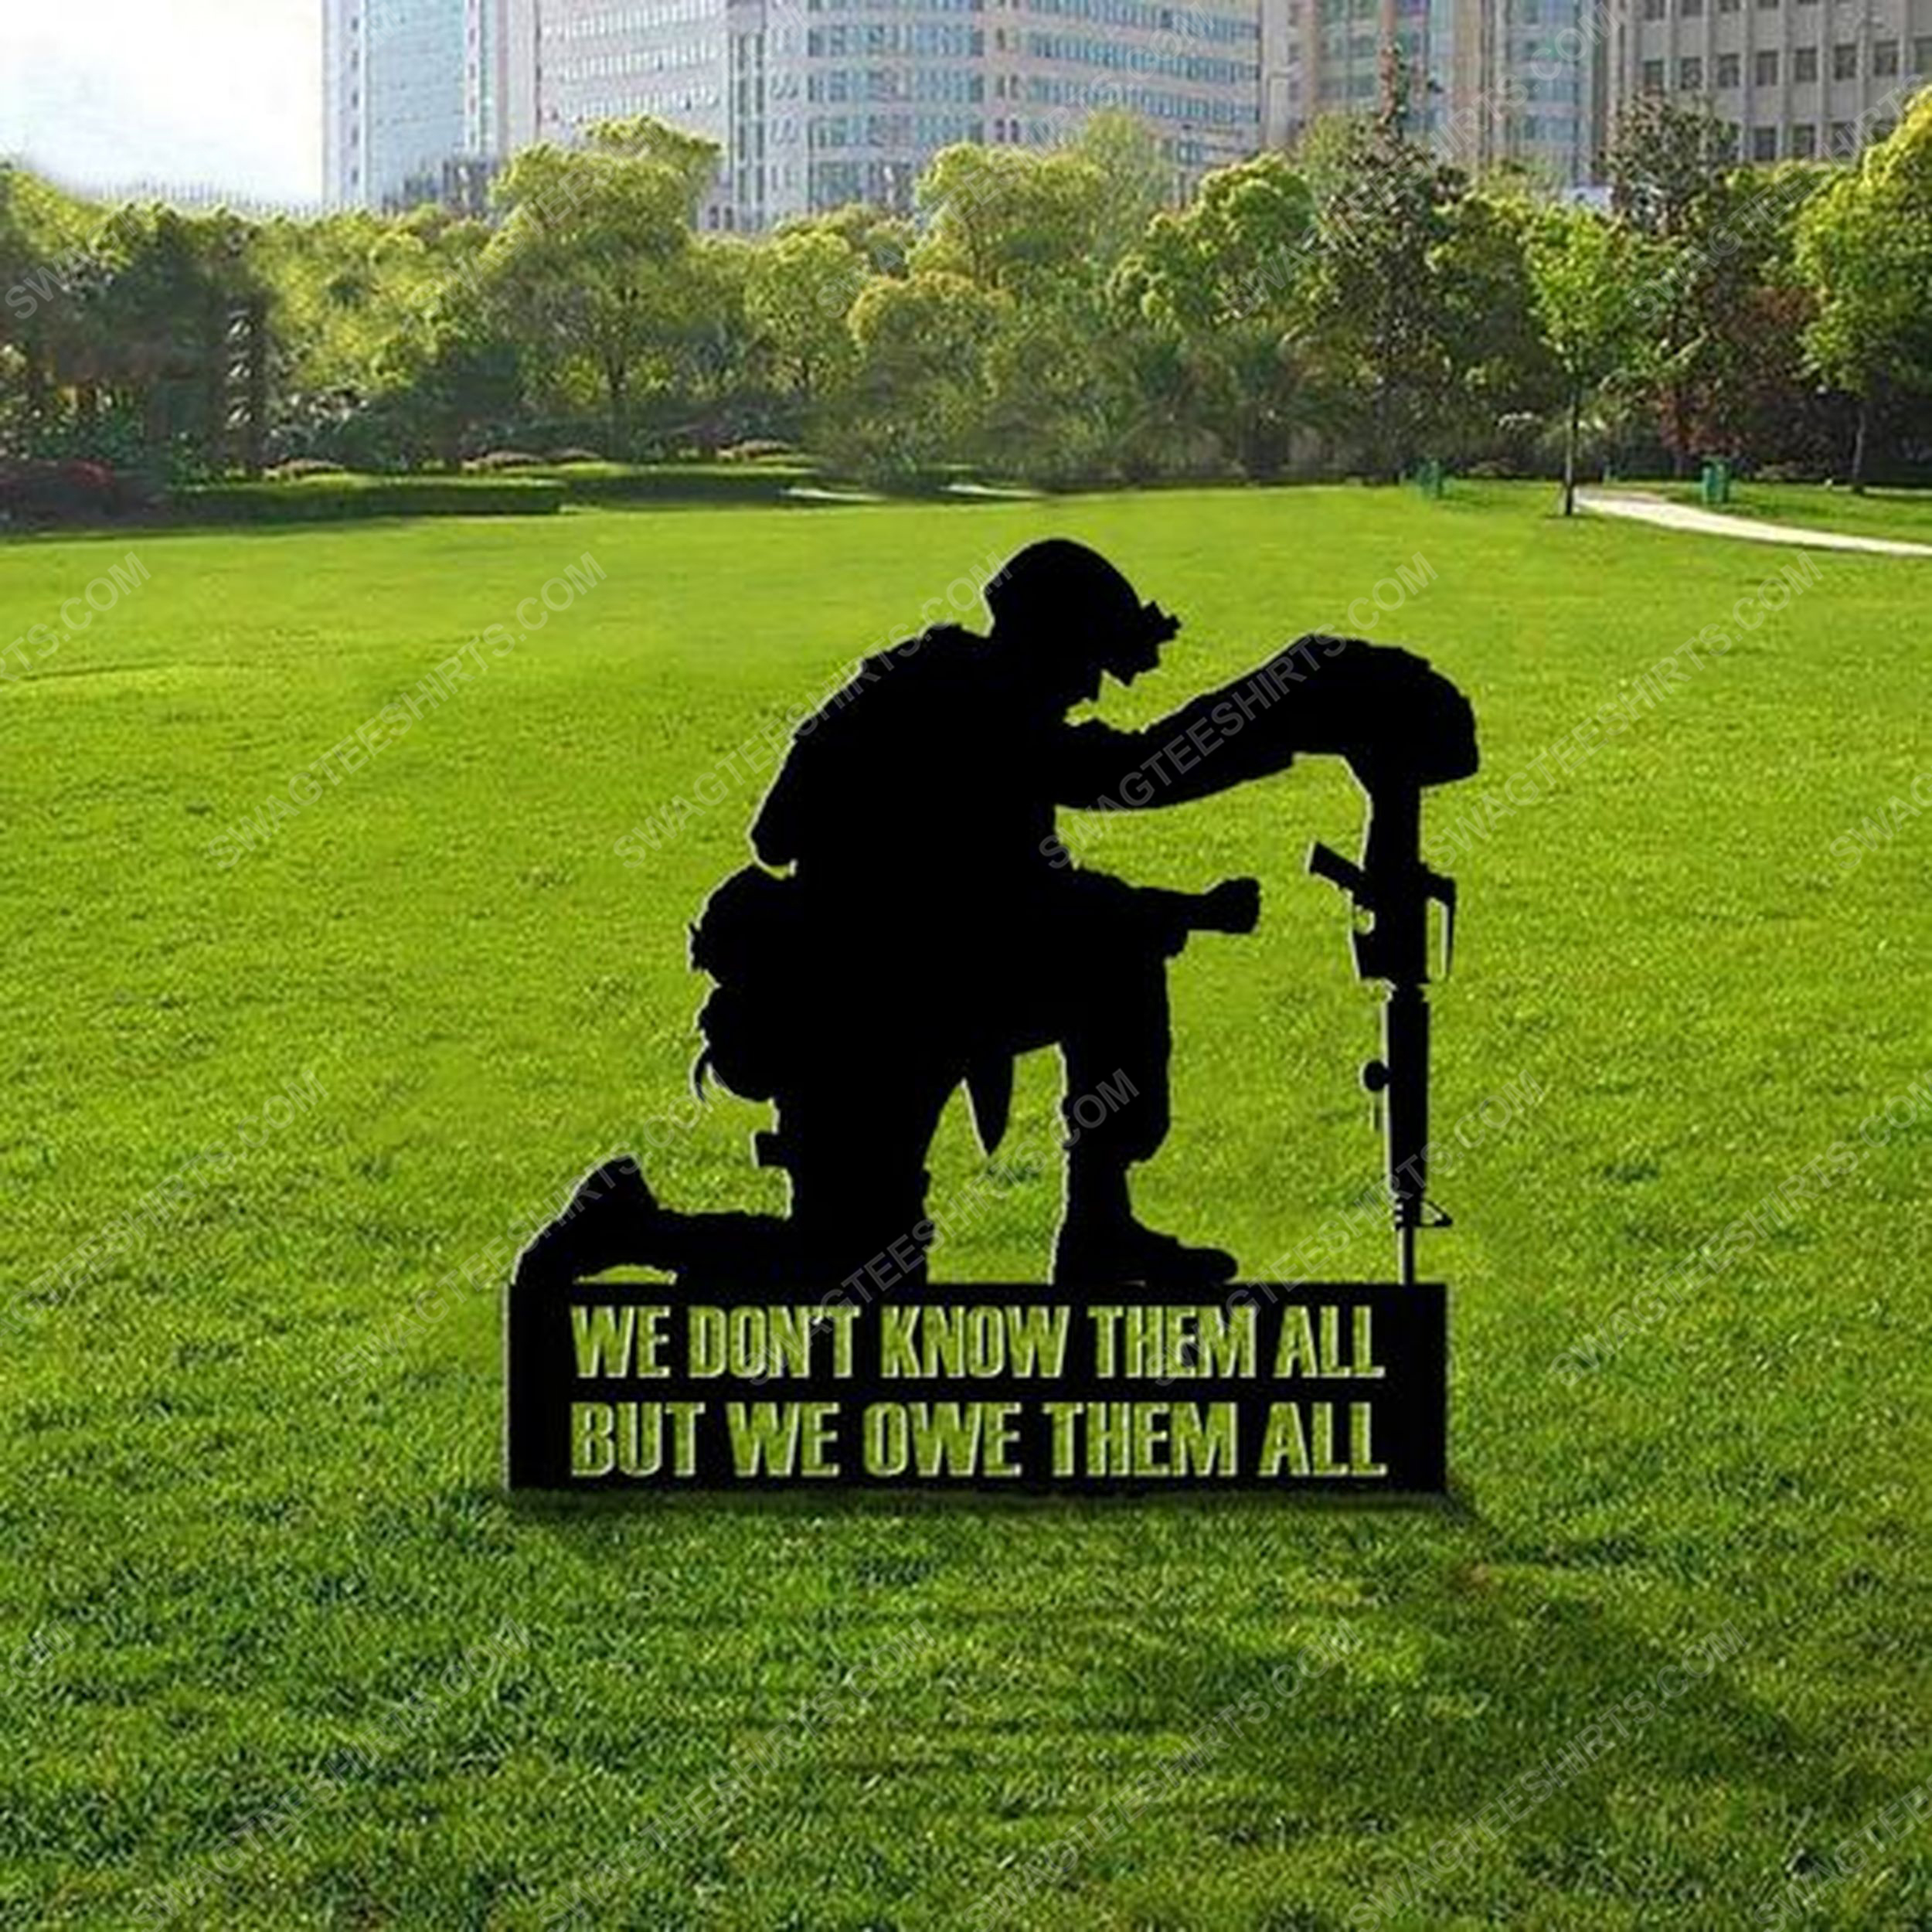 We don't know them all but we owe them all military memorial day yard sign 3(1)